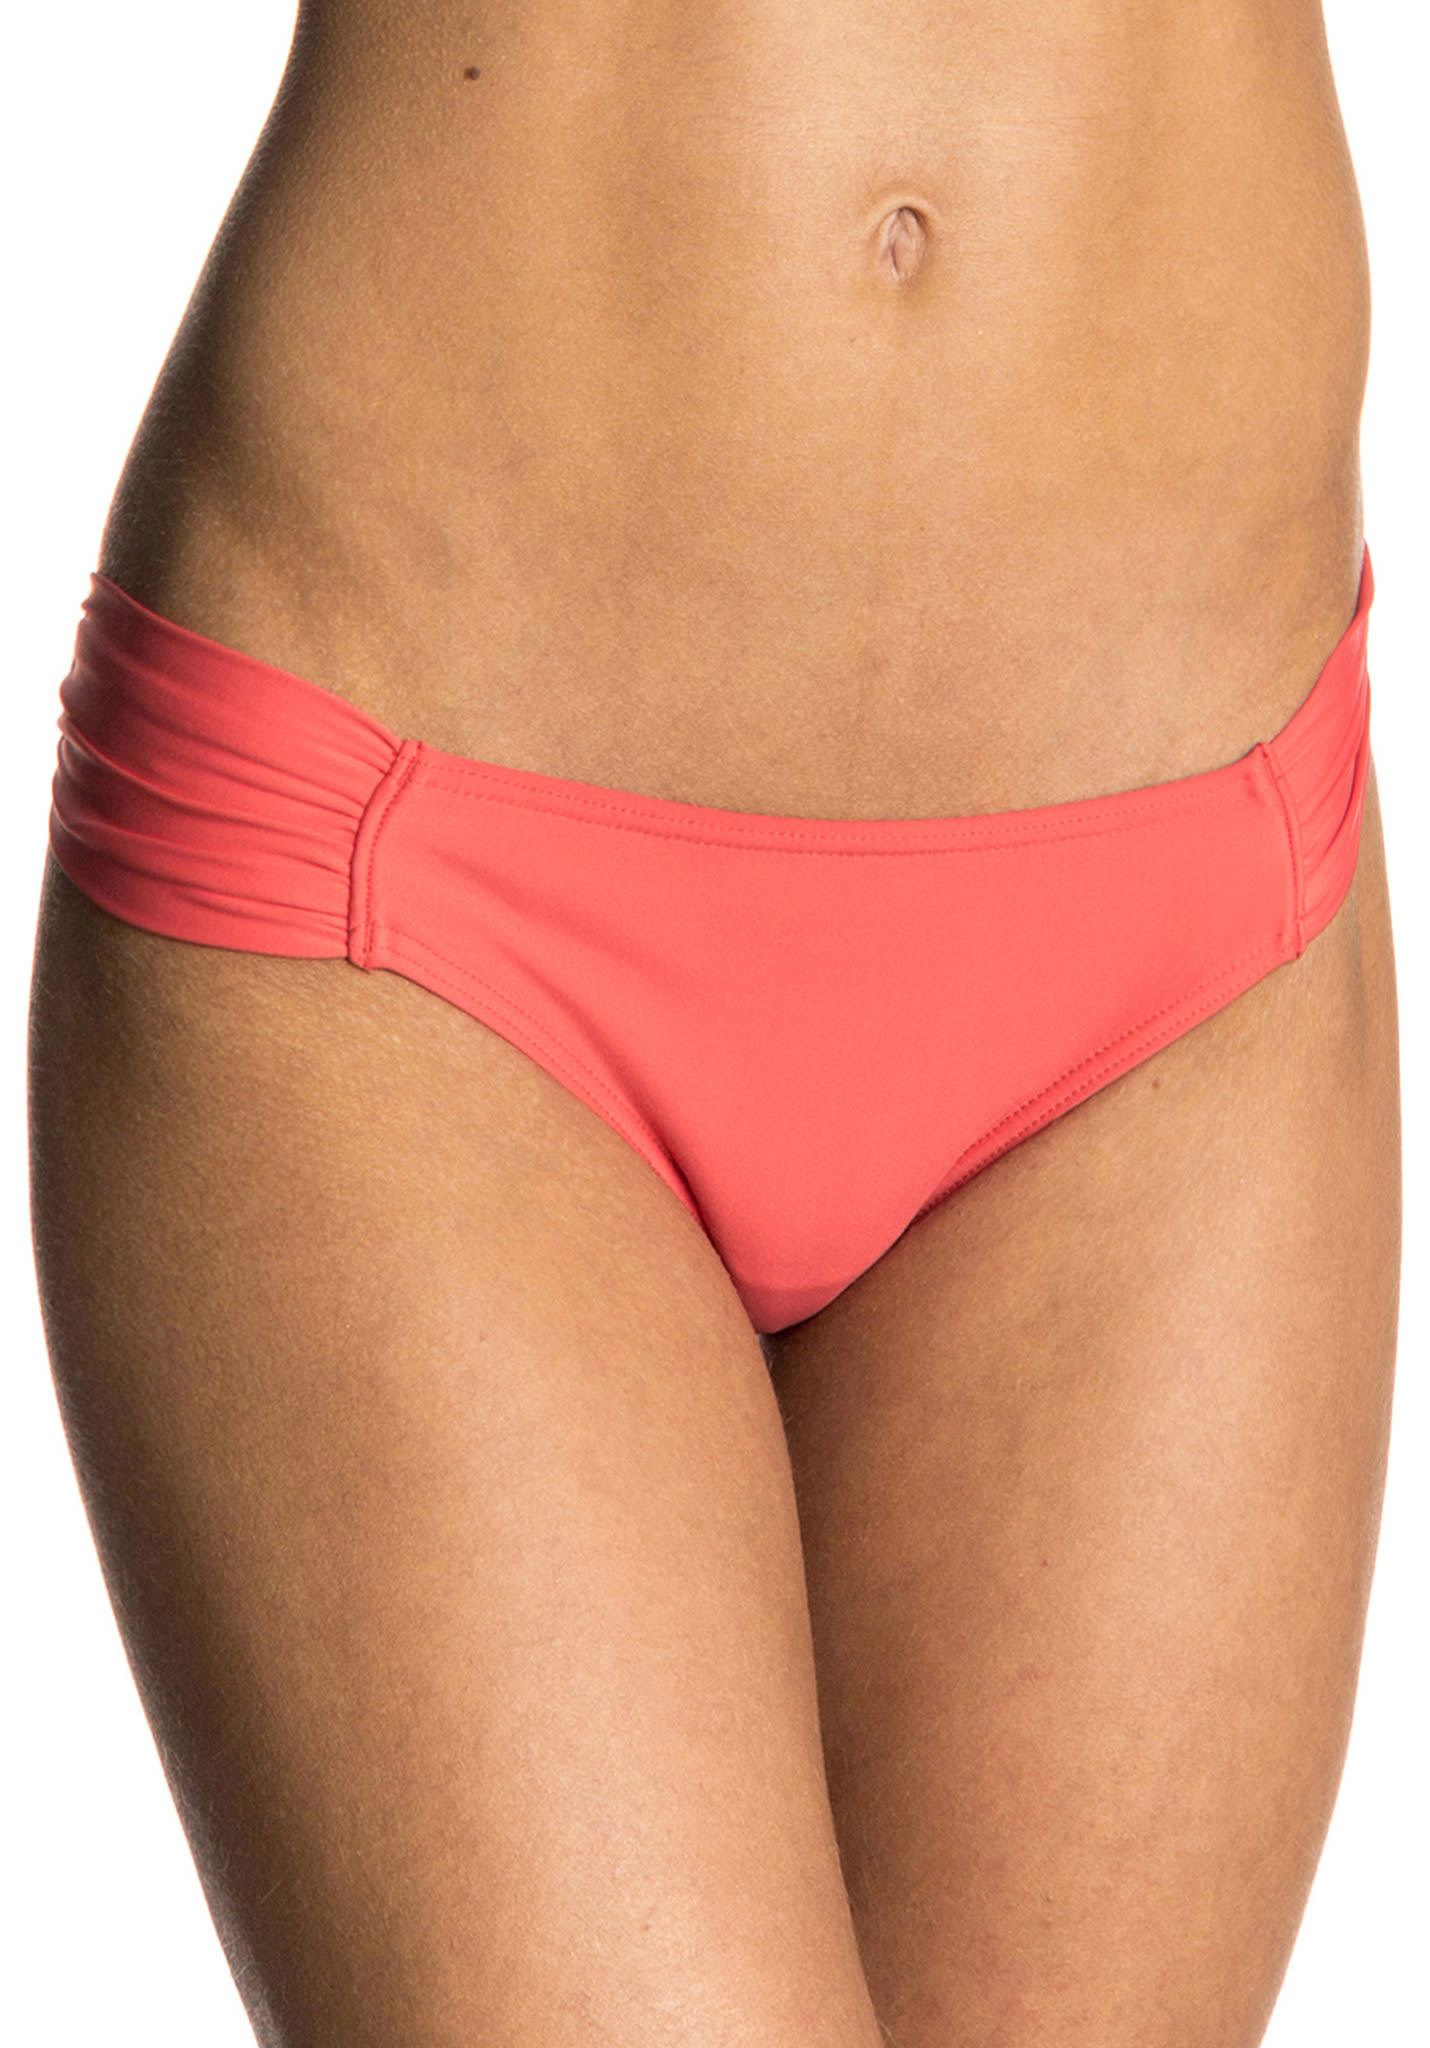 9d24cc5c09bb6 Rip Curl Classic Surf Cheeky Hipster - Bikini Bottom for Women - Red - Planet  Sports